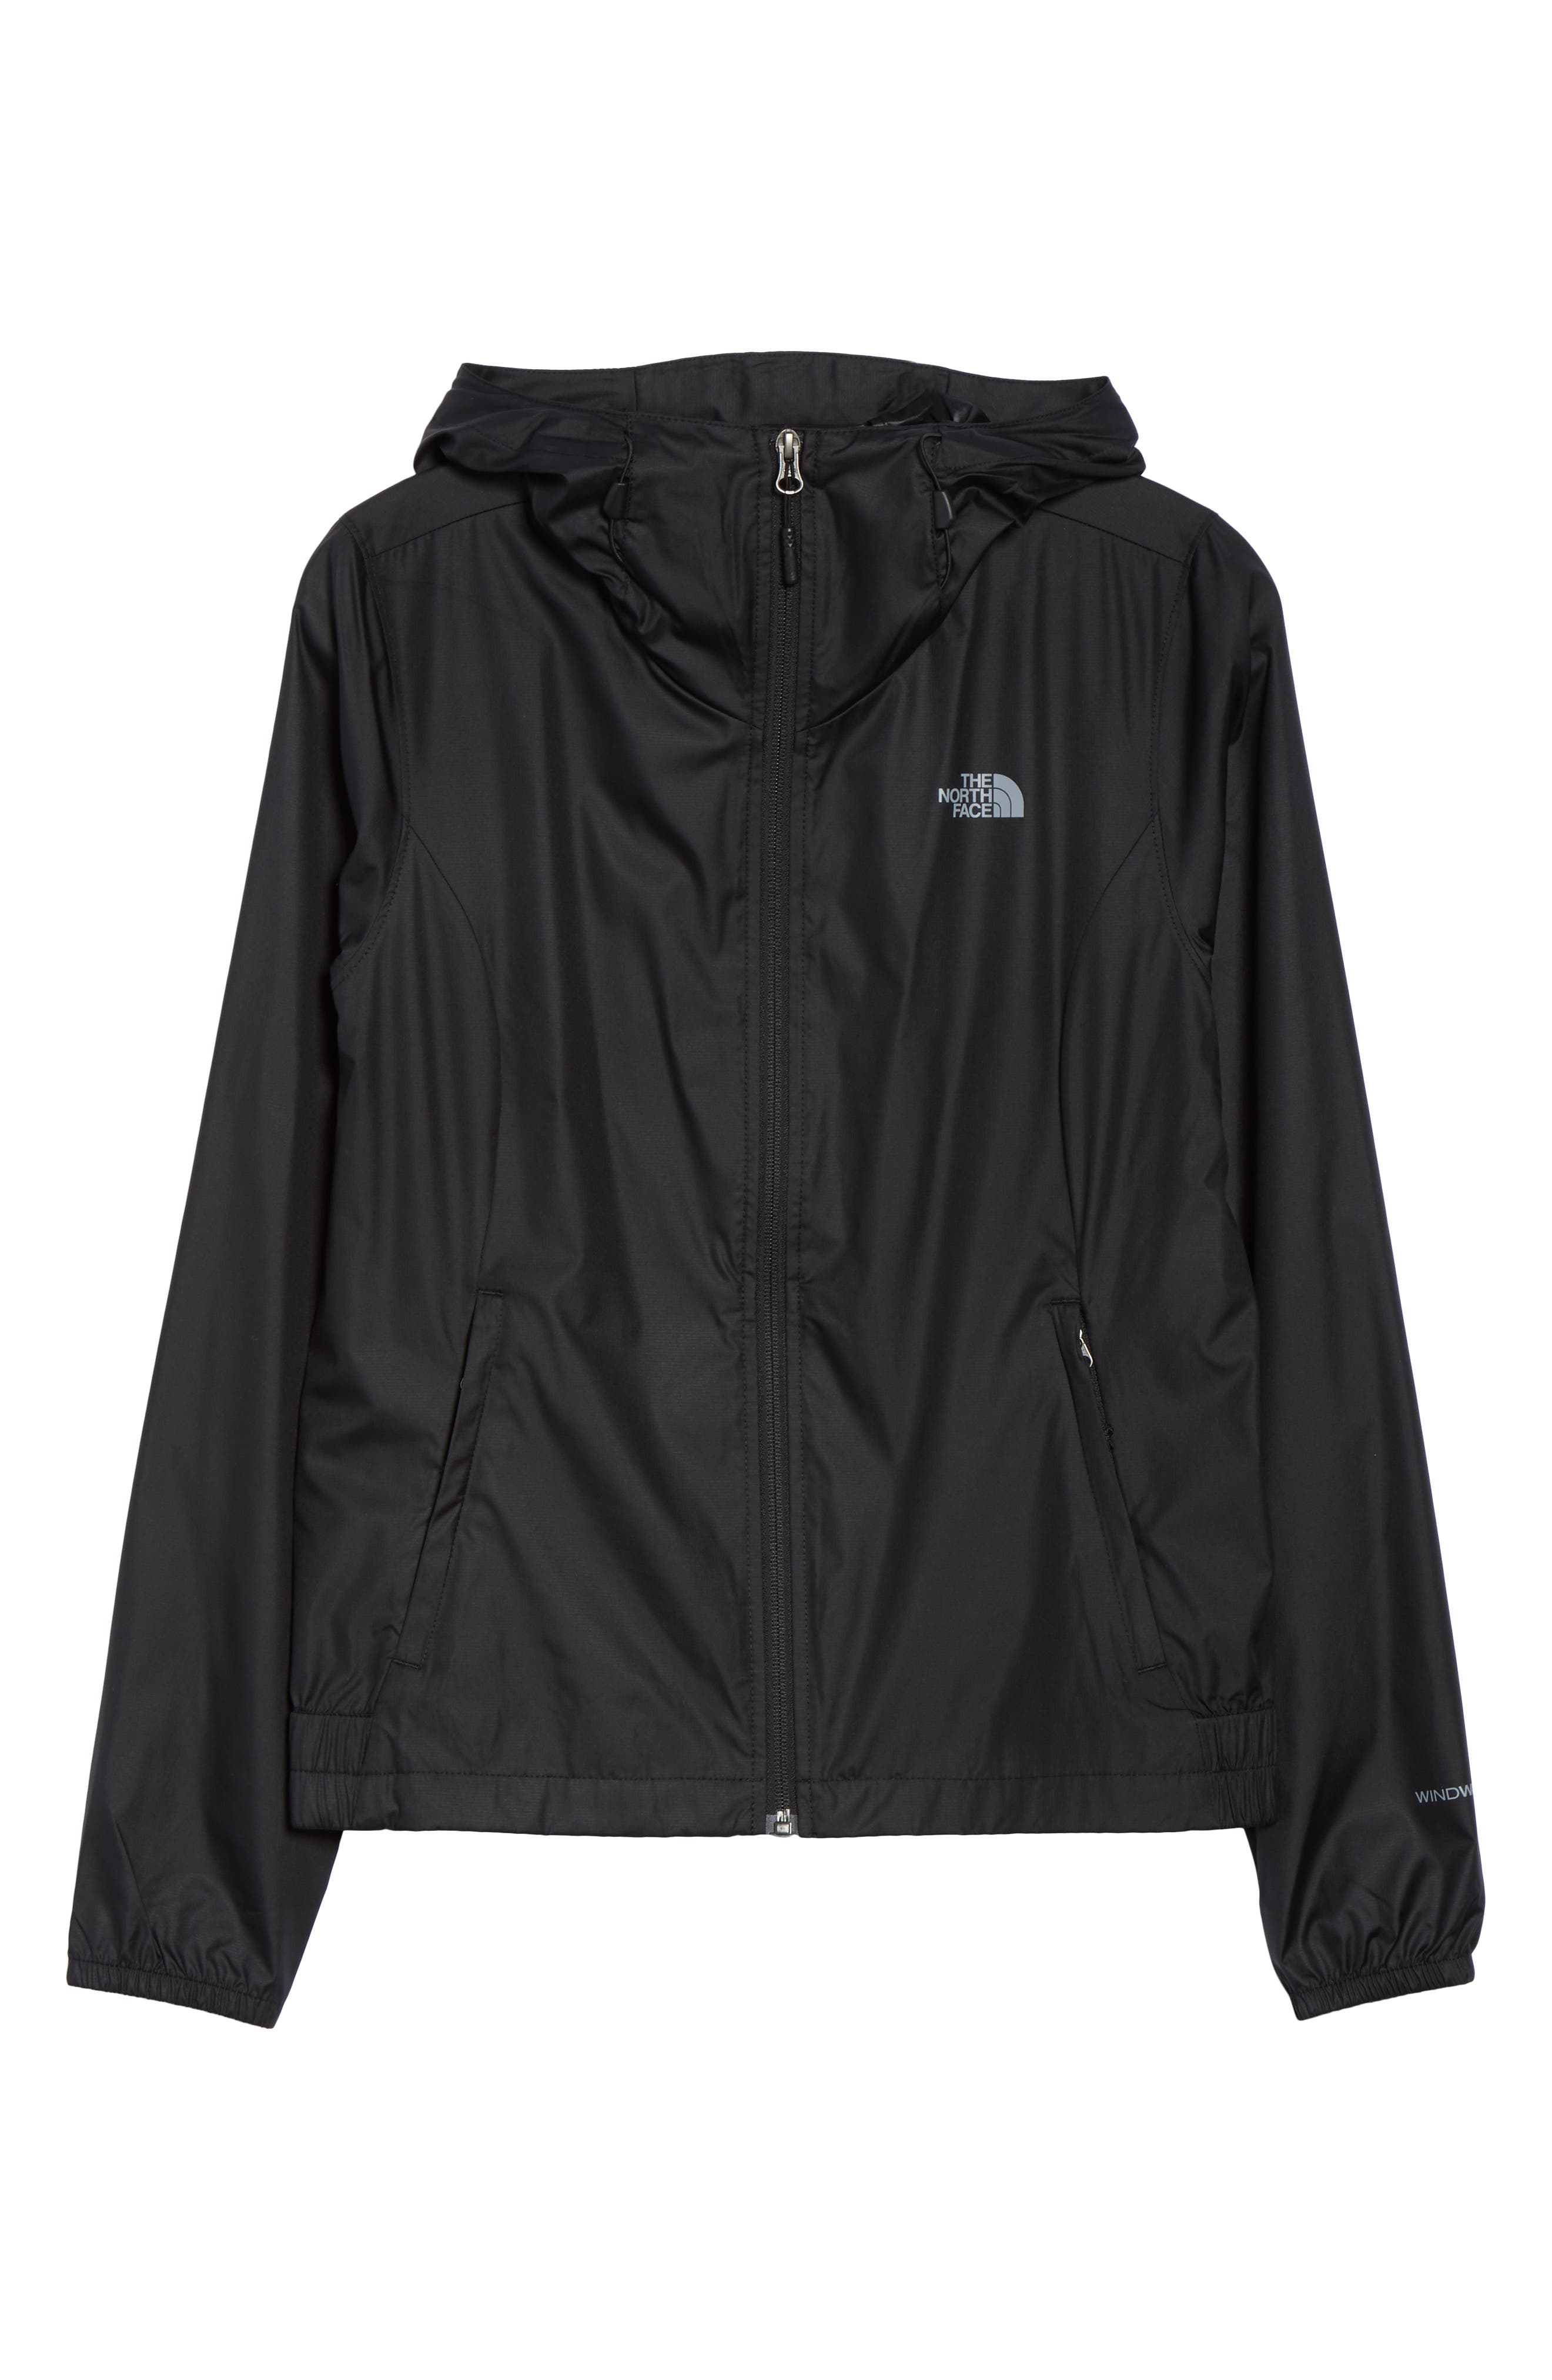 THE NORTH FACE, Cyclone 3.0 WindWall<sup>®</sup> Jacket, Alternate thumbnail 6, color, 001